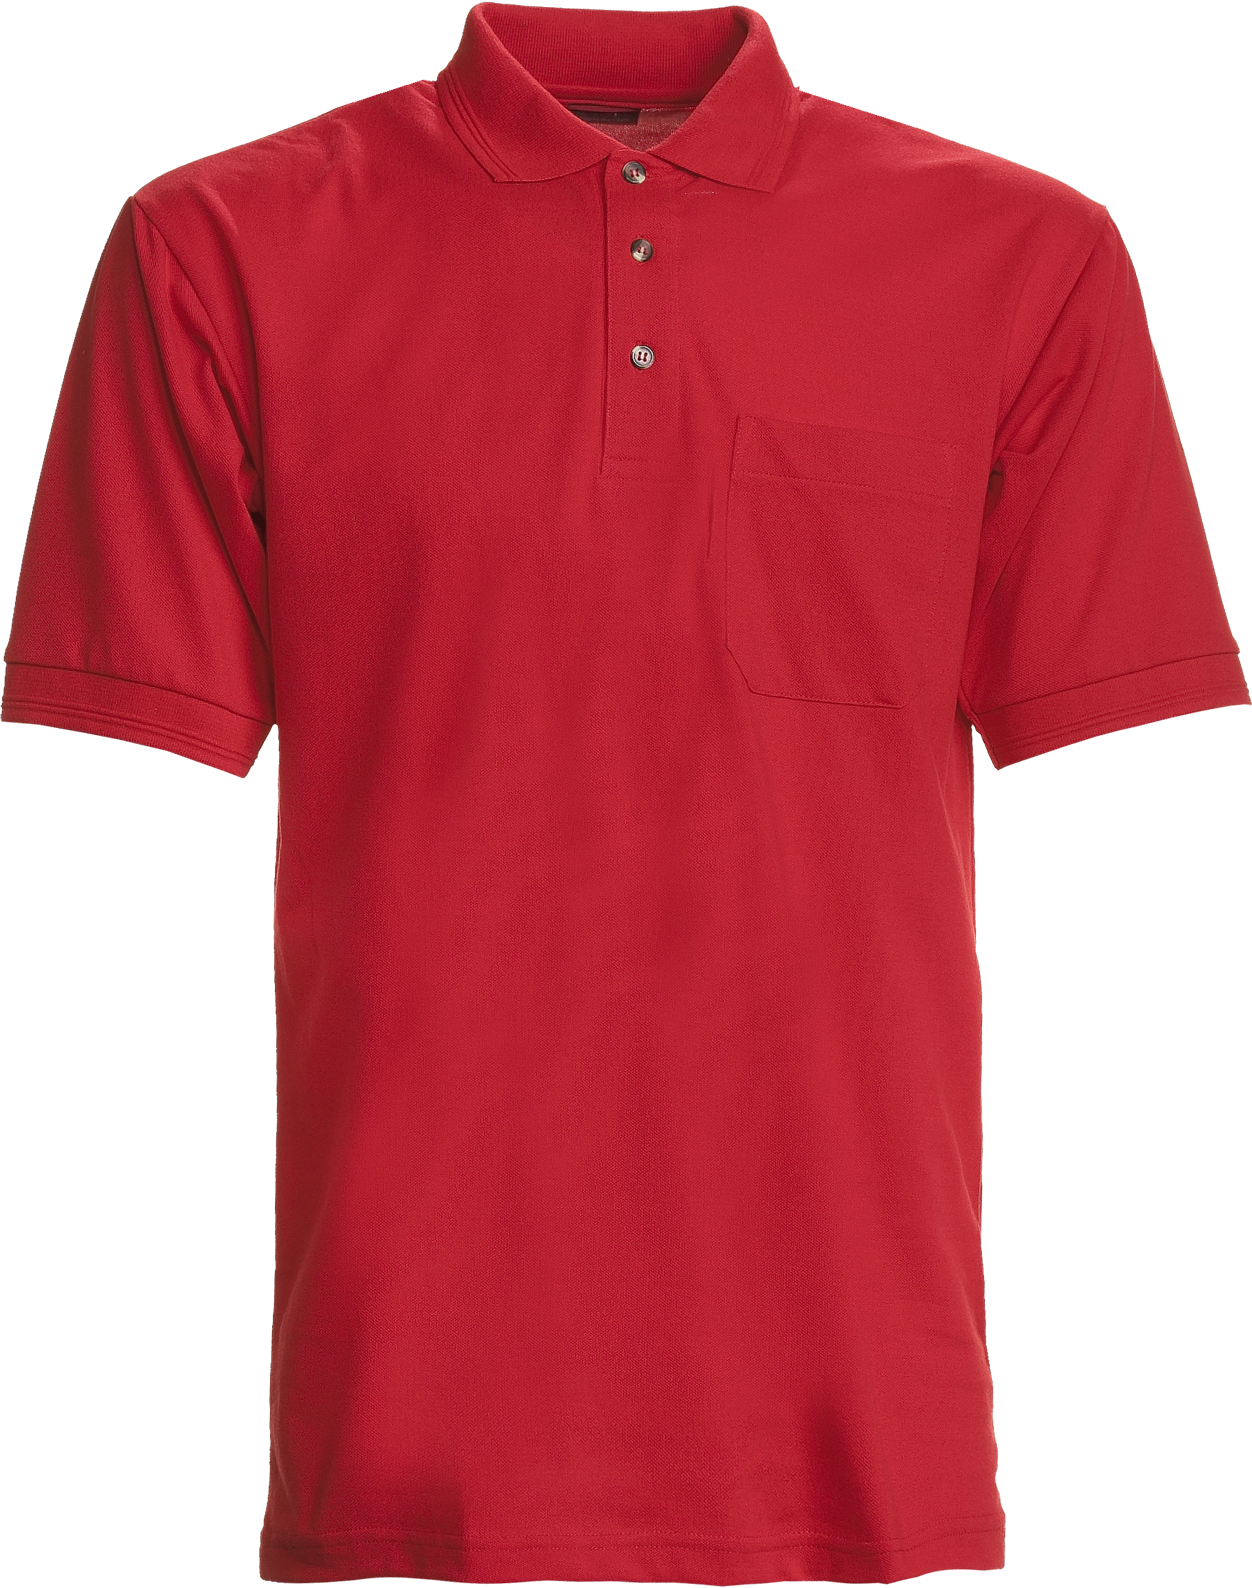 Mens Polo Shirt w. breastpocket, Basic (825012100)